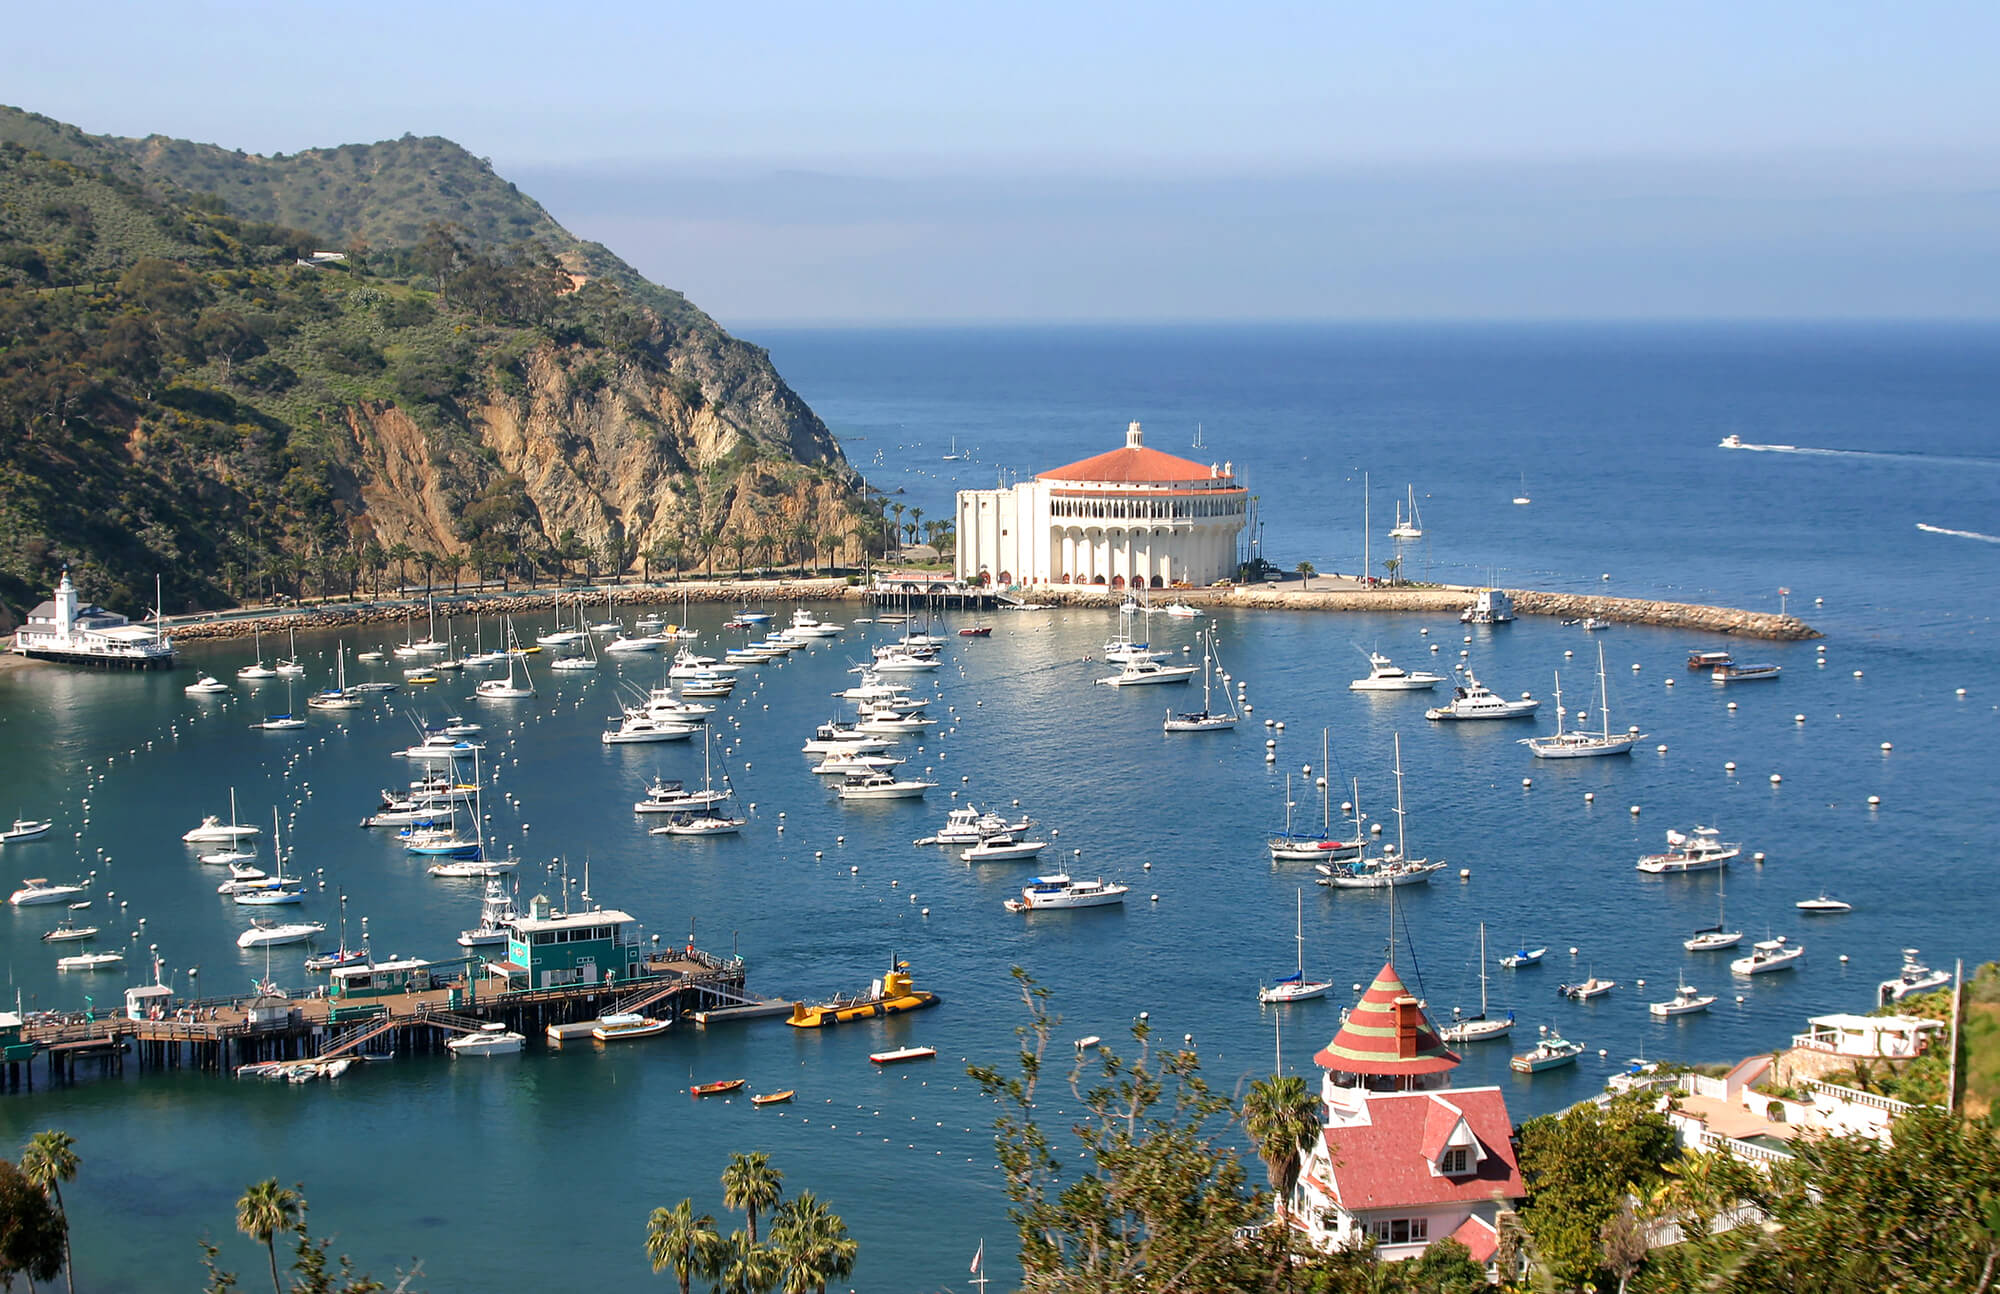 Avalon Bay from the hills on Catalina Island